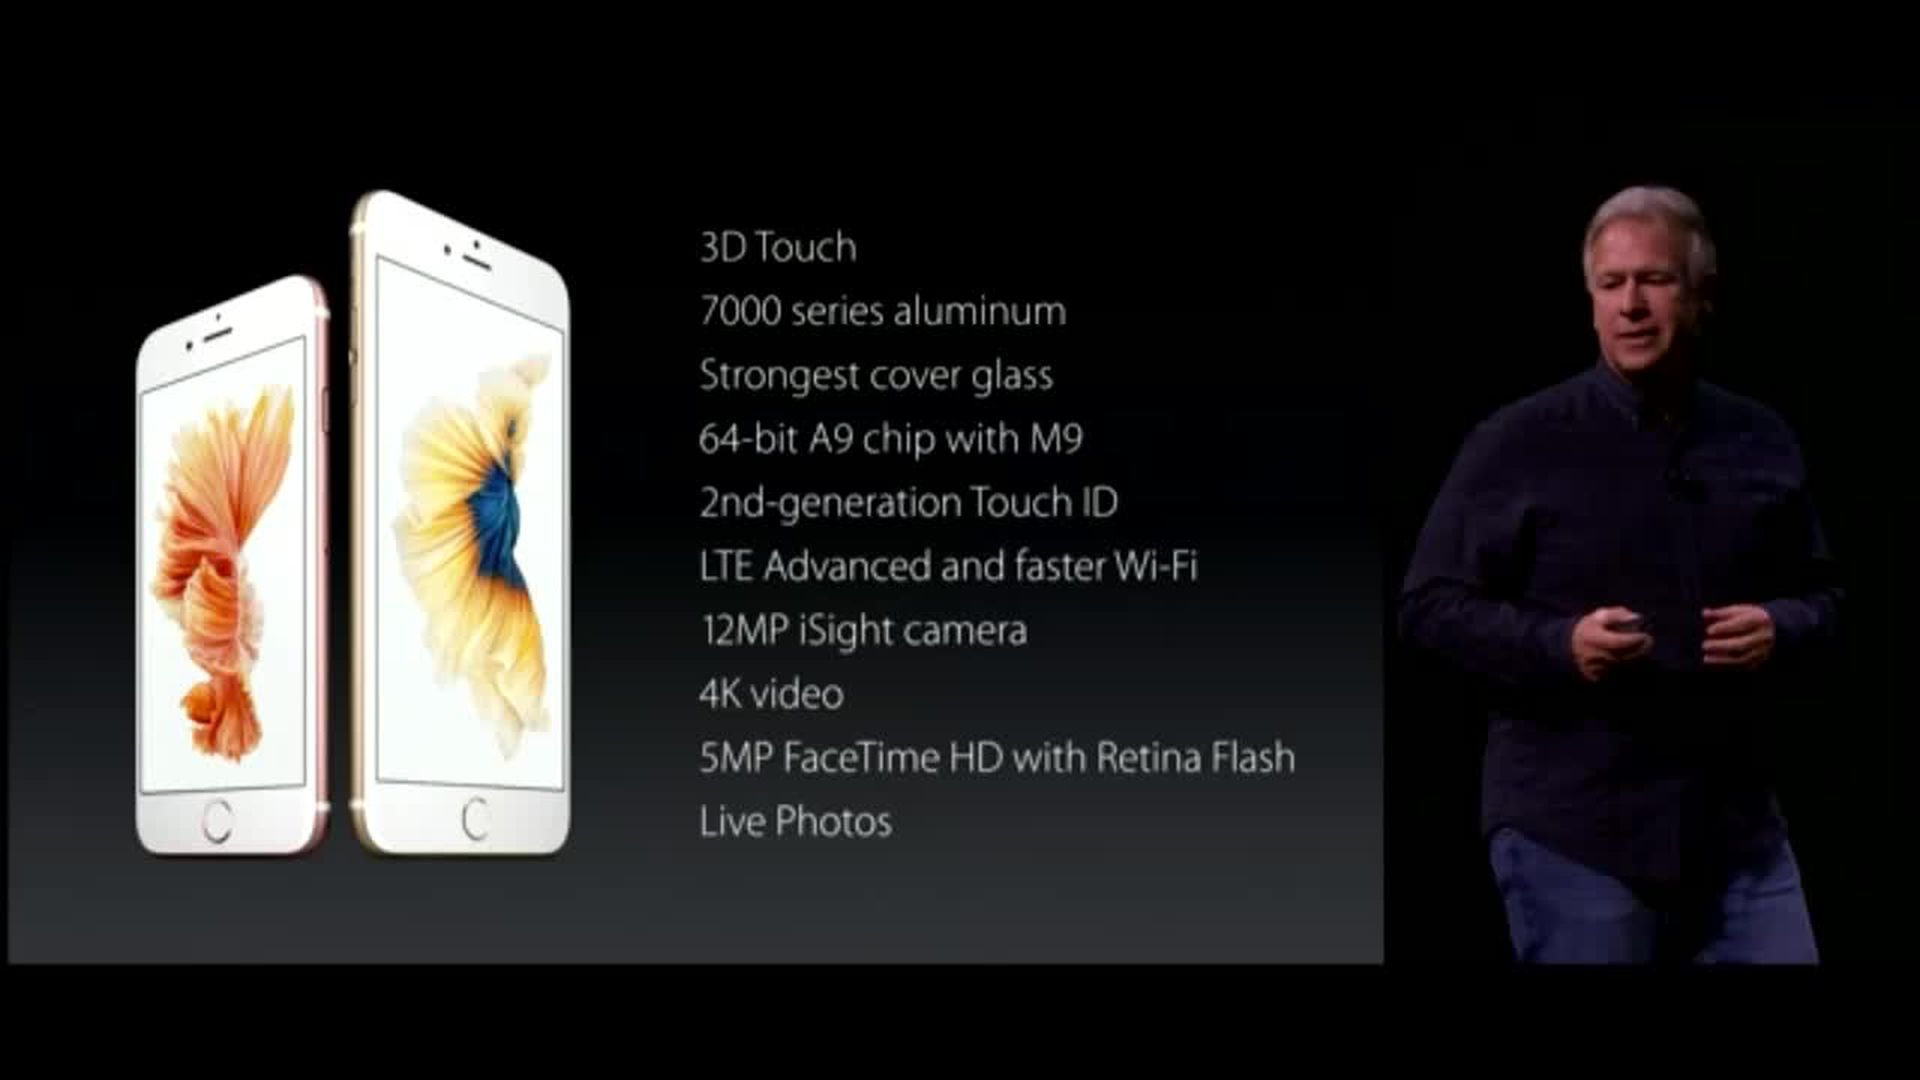 Here's how the new iPhone 6S and 6S Plus compare to the top